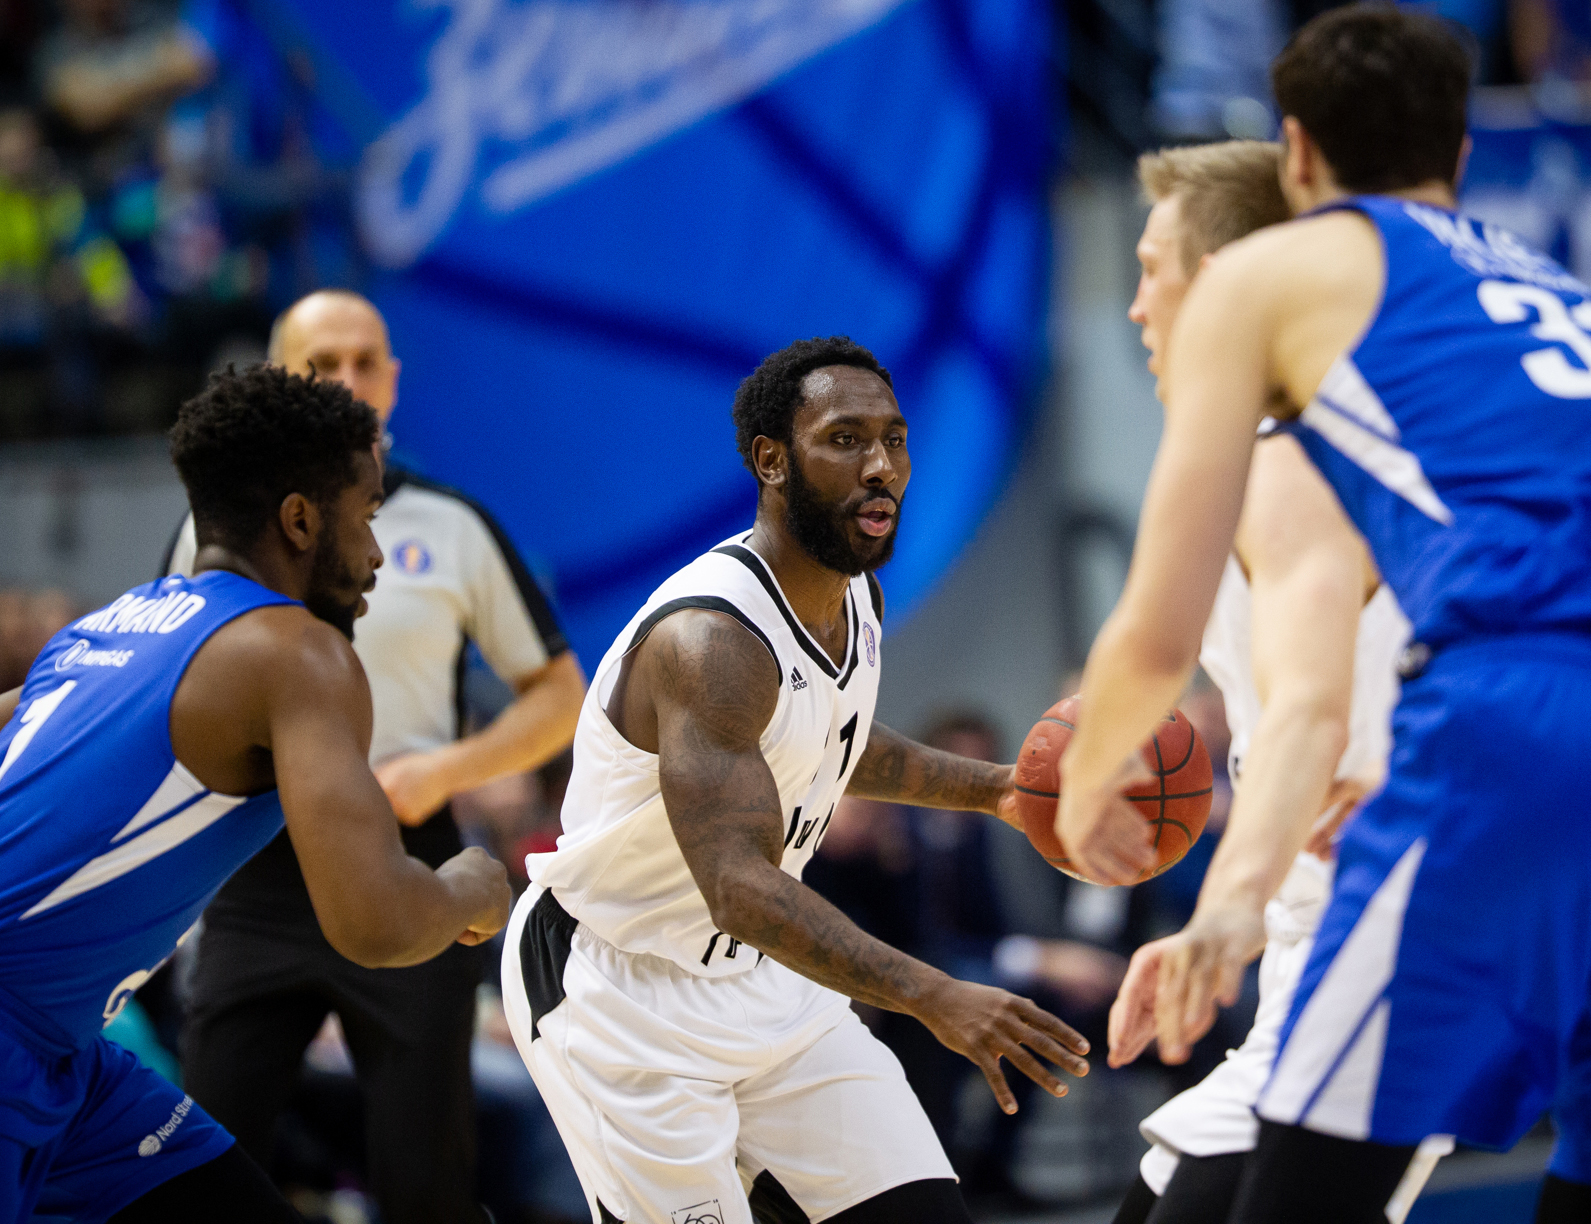 Cosey Delivers In Double OT, VEF Stuns Zenit